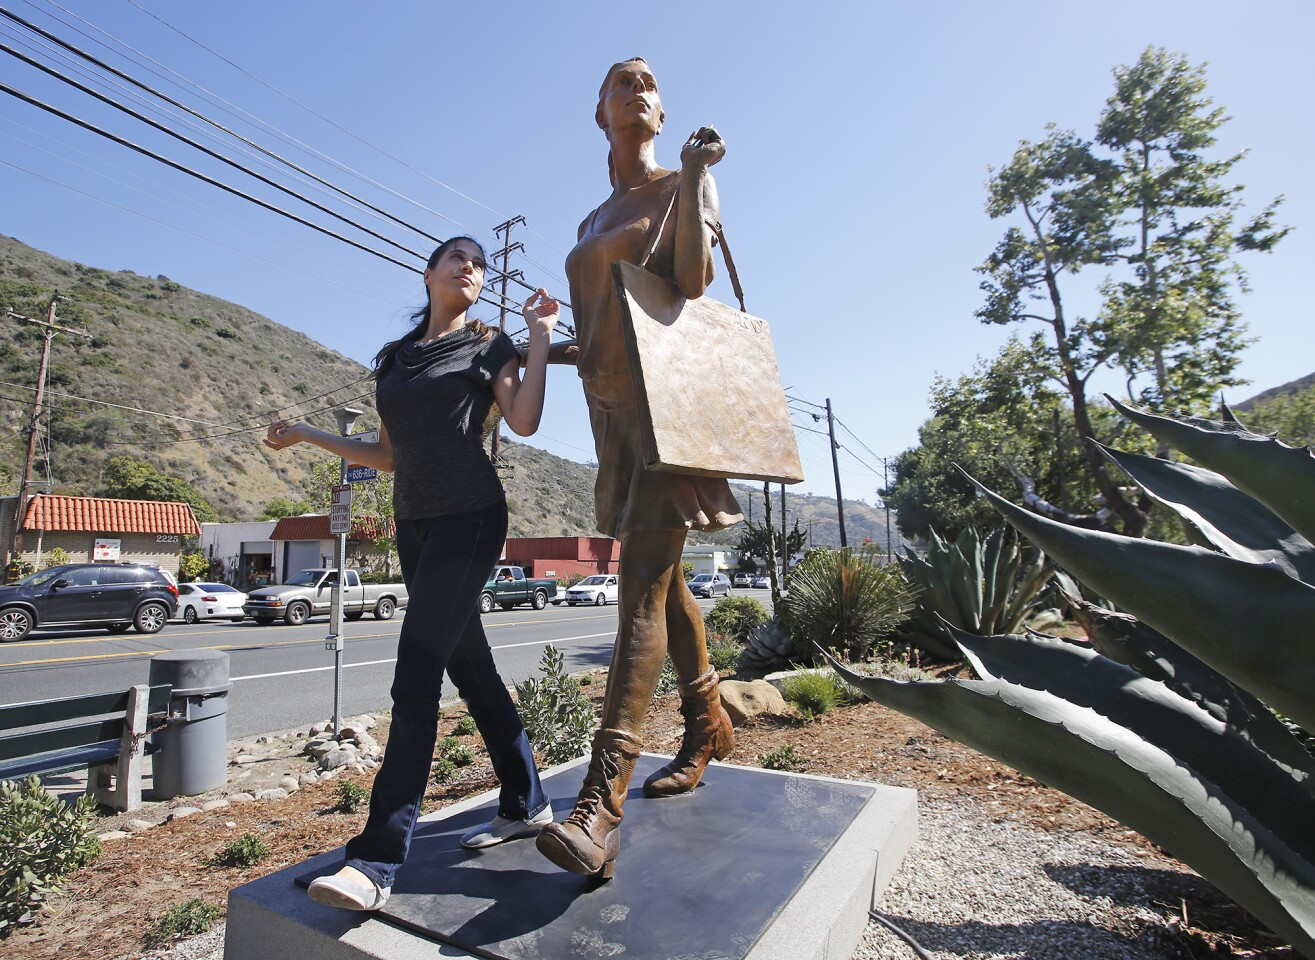 """Art model Ifat Glassman reenacts the pose she made for the sculpture """"The Art Student"""" during the Laguna College of Art + Design's unveiling ceremony Thursday for """"Canyon Walkers,"""" a trio of sculptures along Laguna Canyon Road in Laguna Beach."""